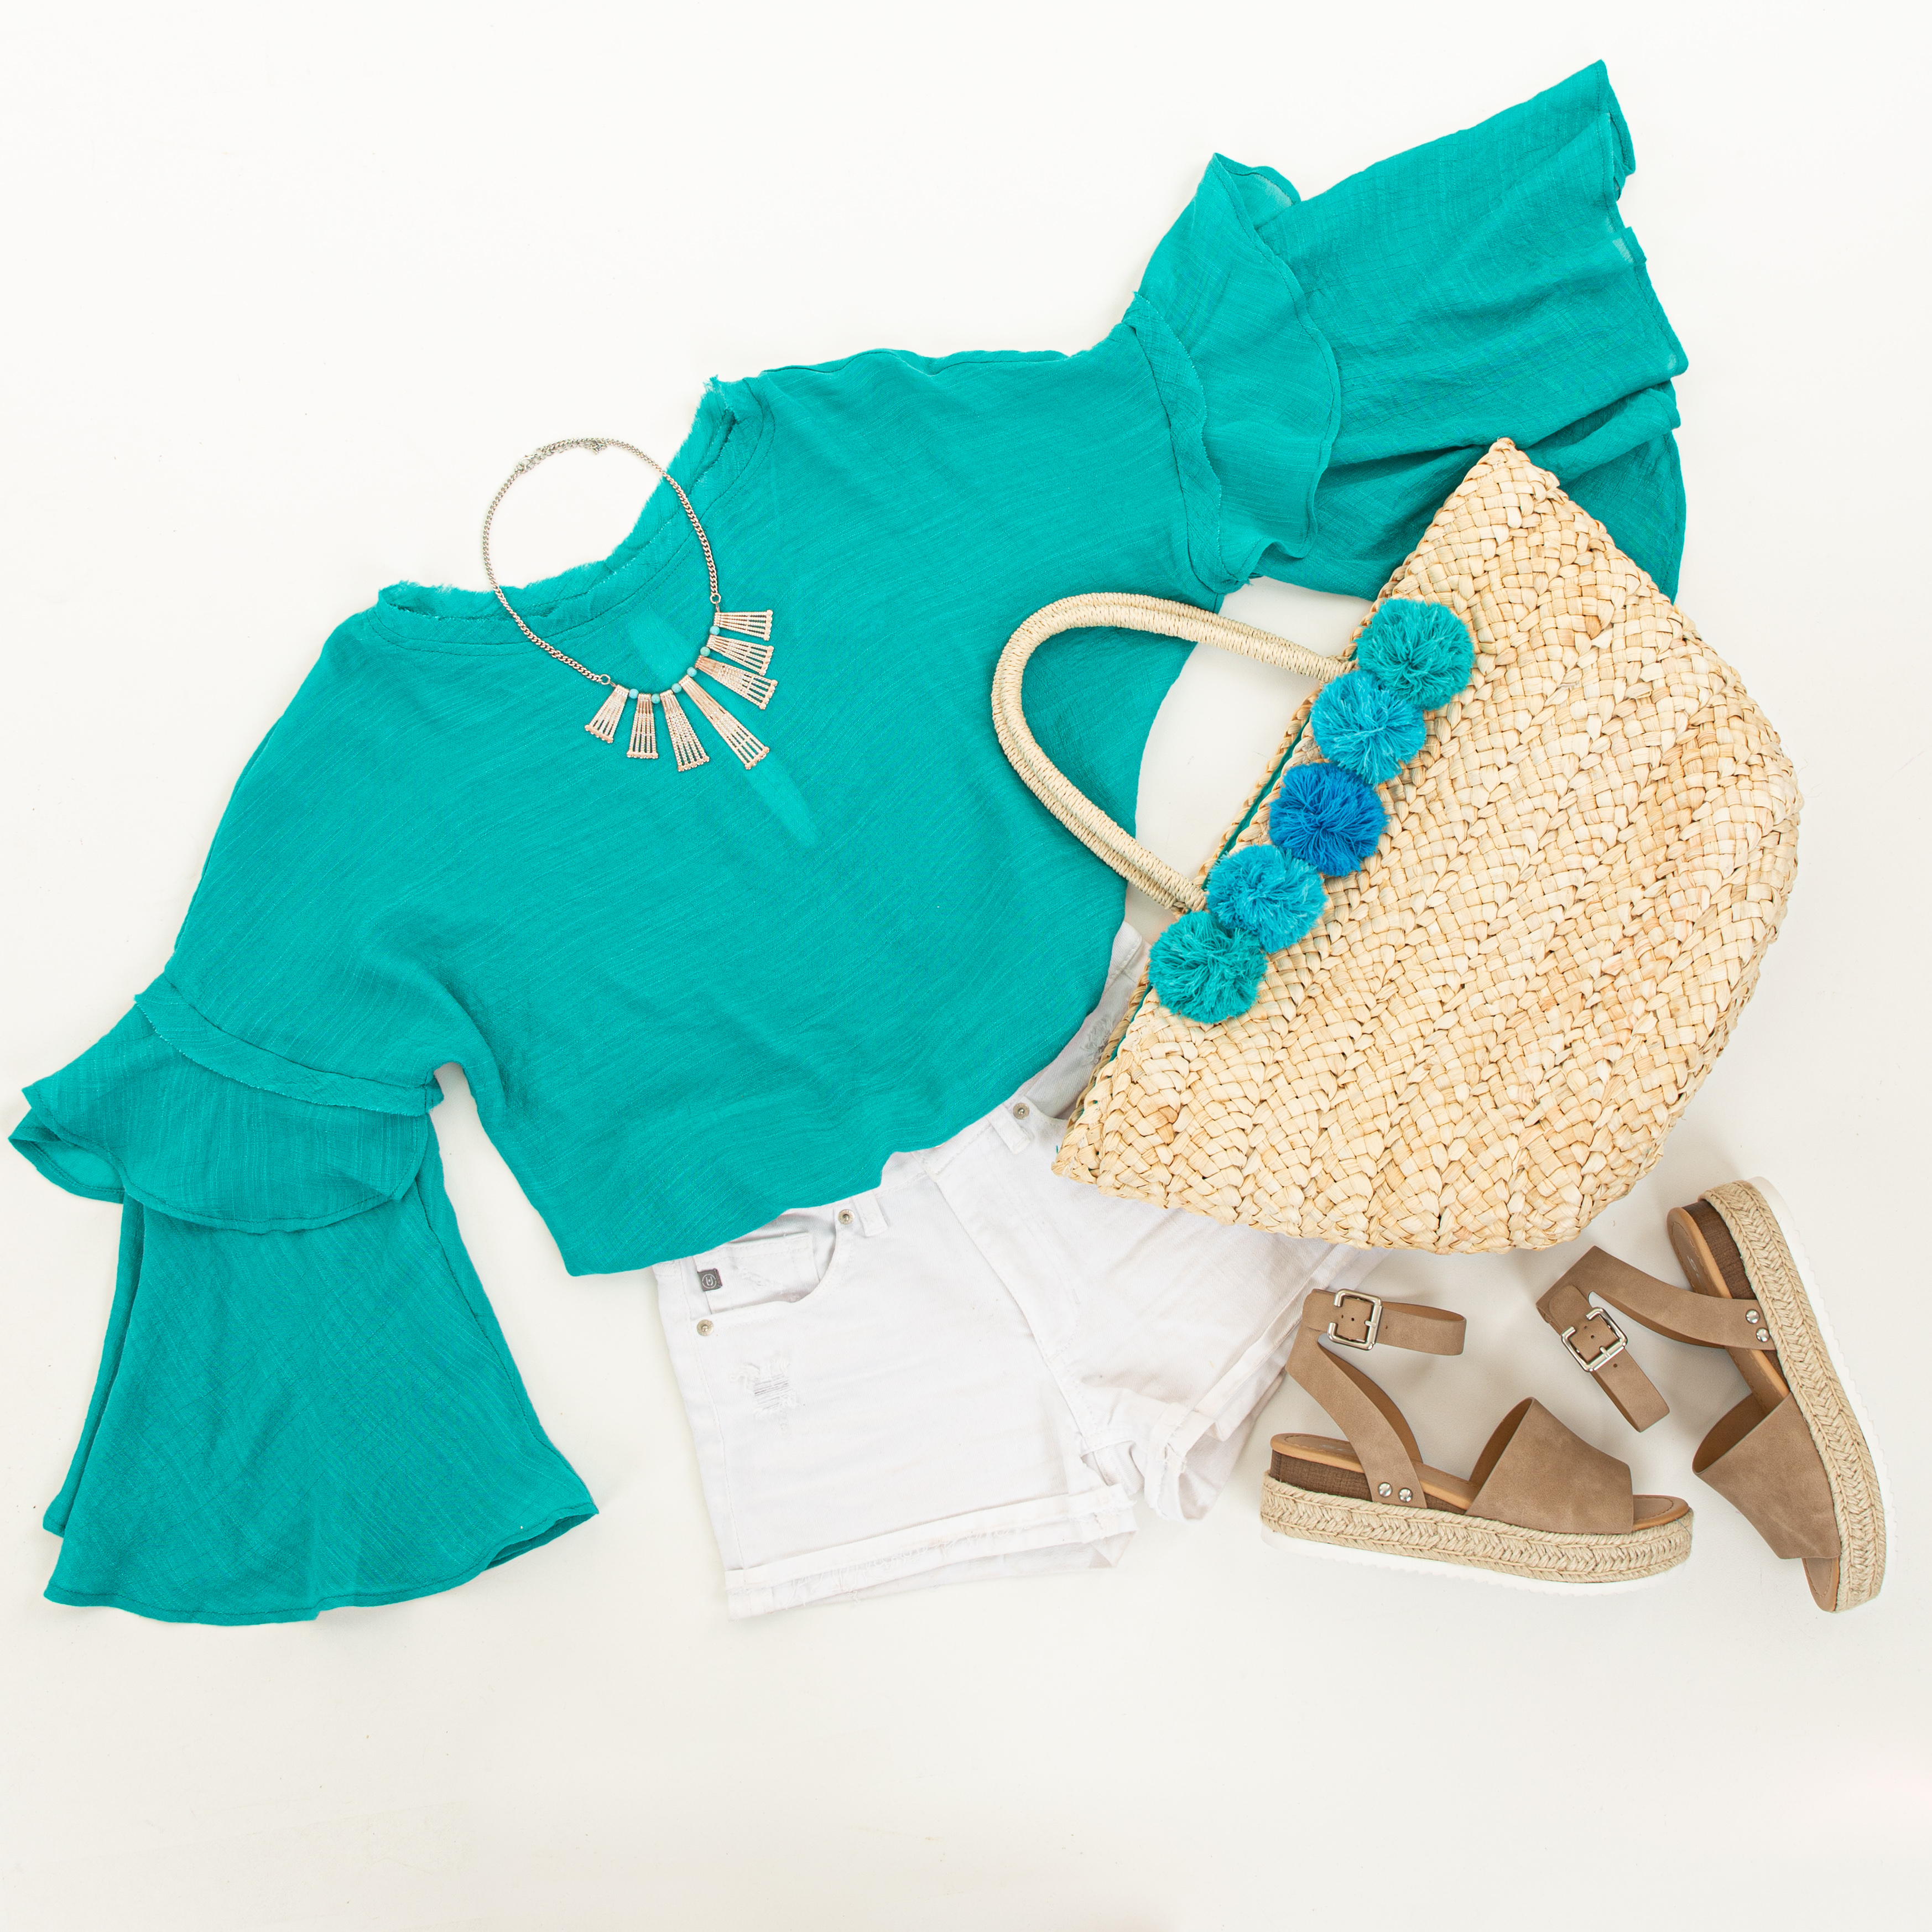 Teal Blue Top with Long Bell Sleeves and Keyhole Back